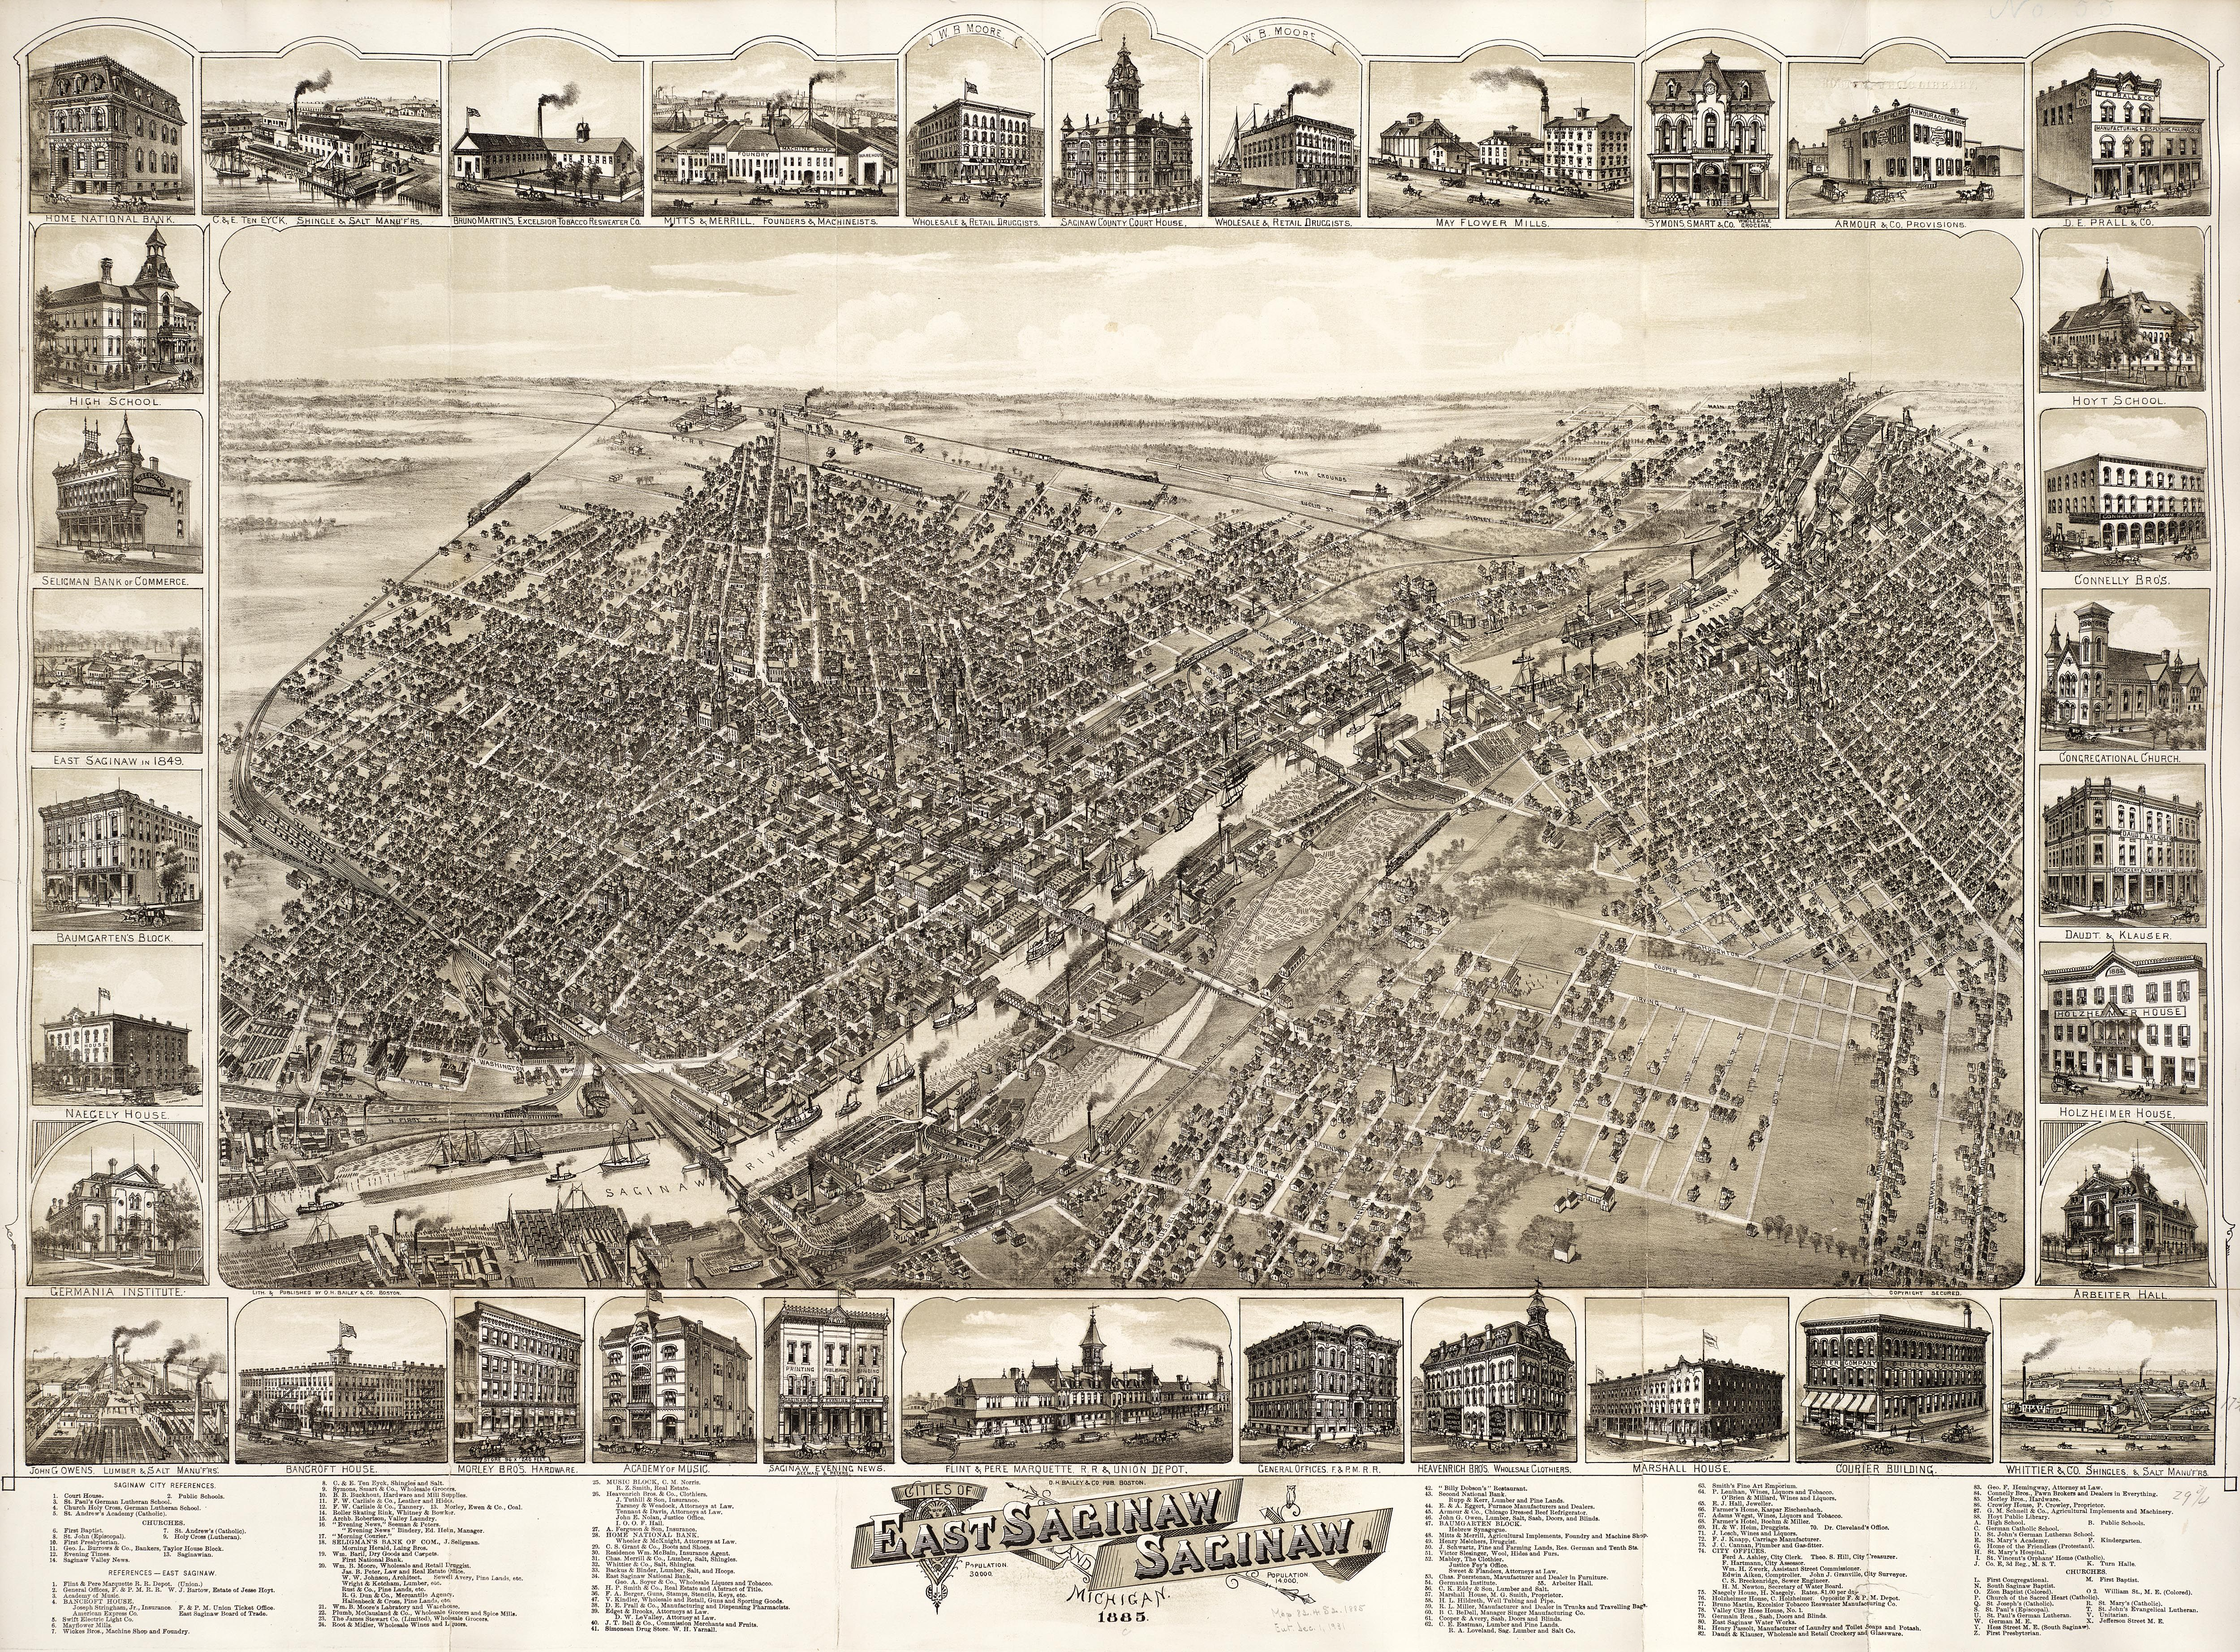 Going Back To 1885 In East Saginaw With This Incredible Map